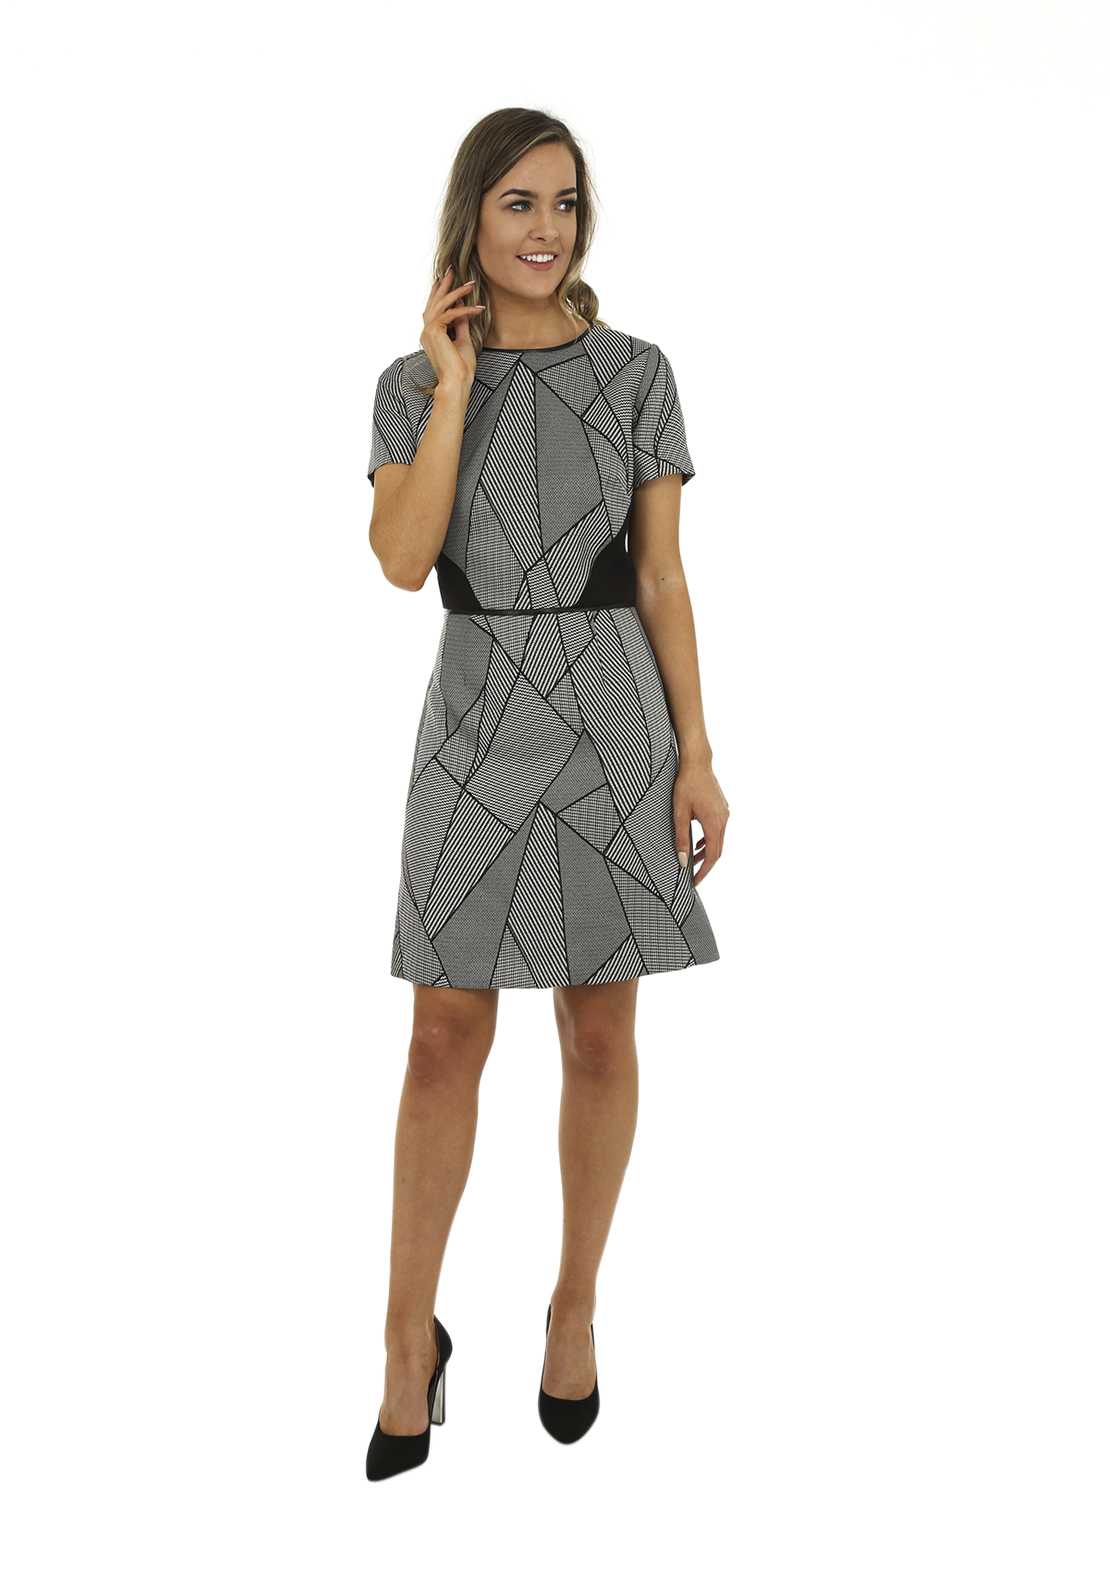 Tahari by Arthur S. Levine Geometric Print Dress, Grey